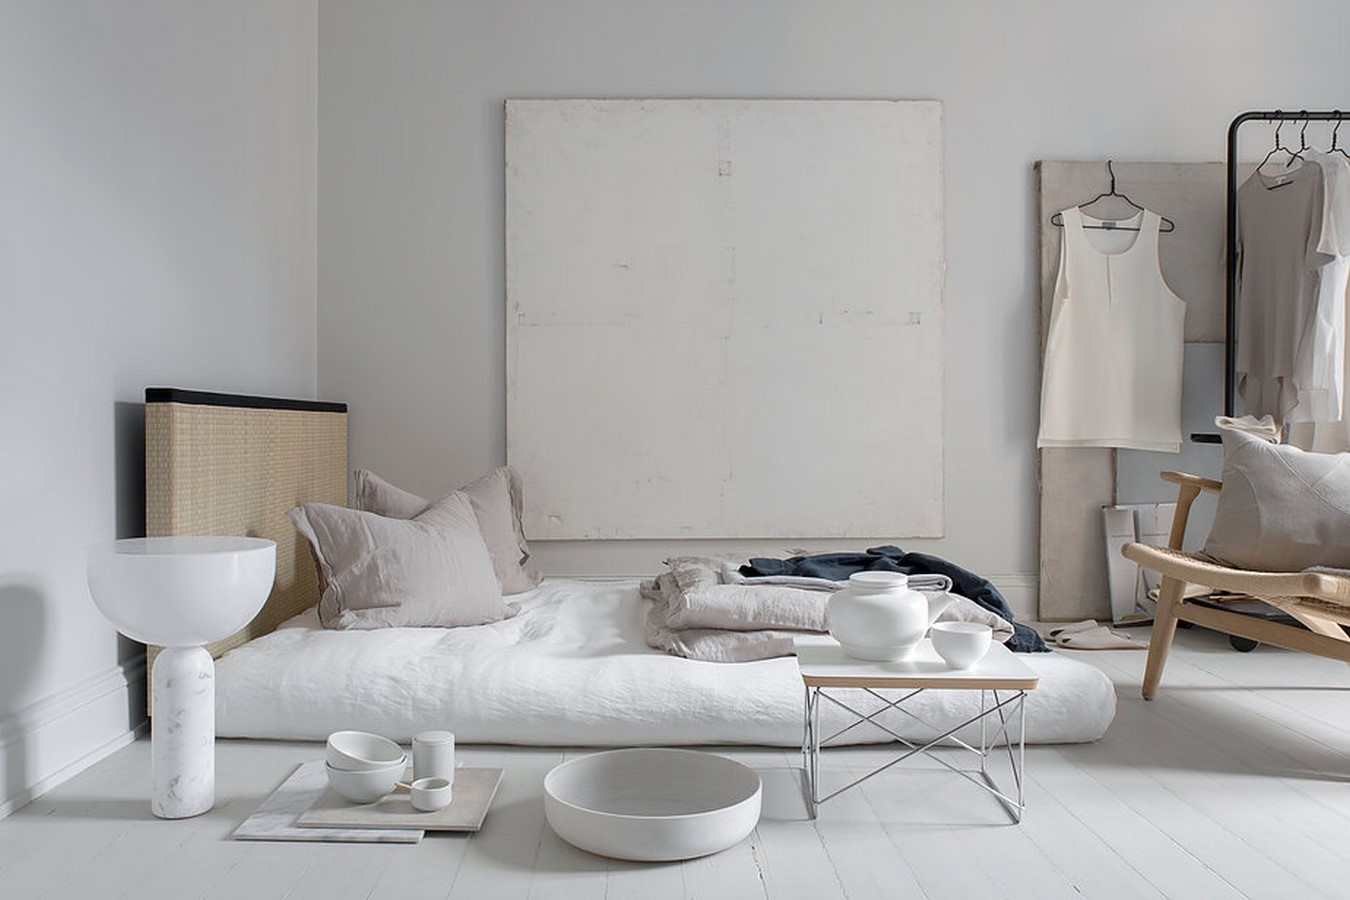 10 Things you did not know about The Wabi-Sabi Design Style - Sheet7